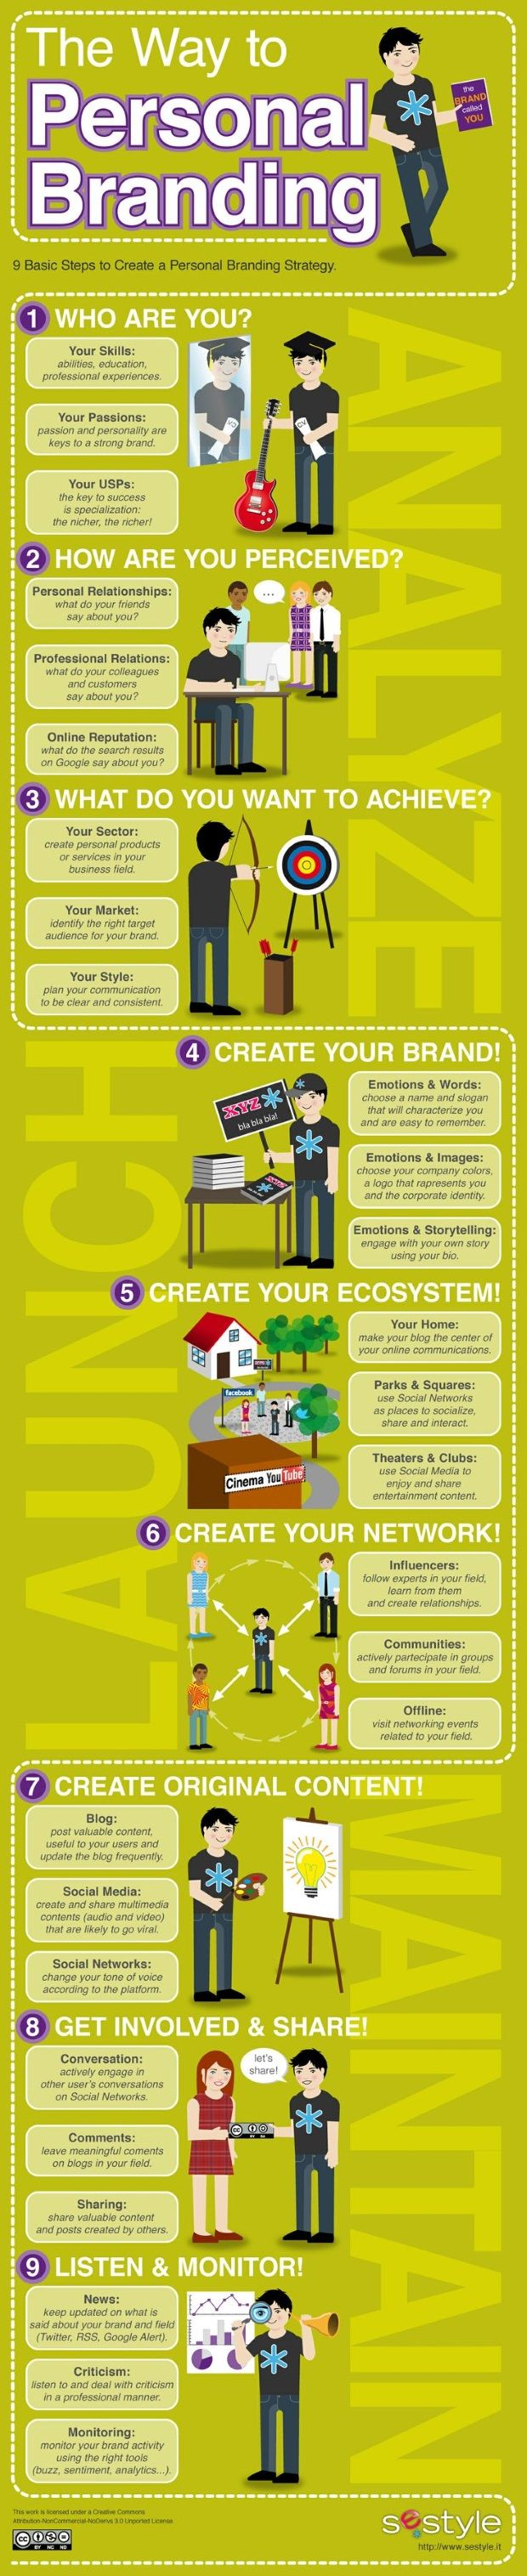 How to Create a Personal Branding Strategy [9 STEPS] [INFOGRAPHIC]